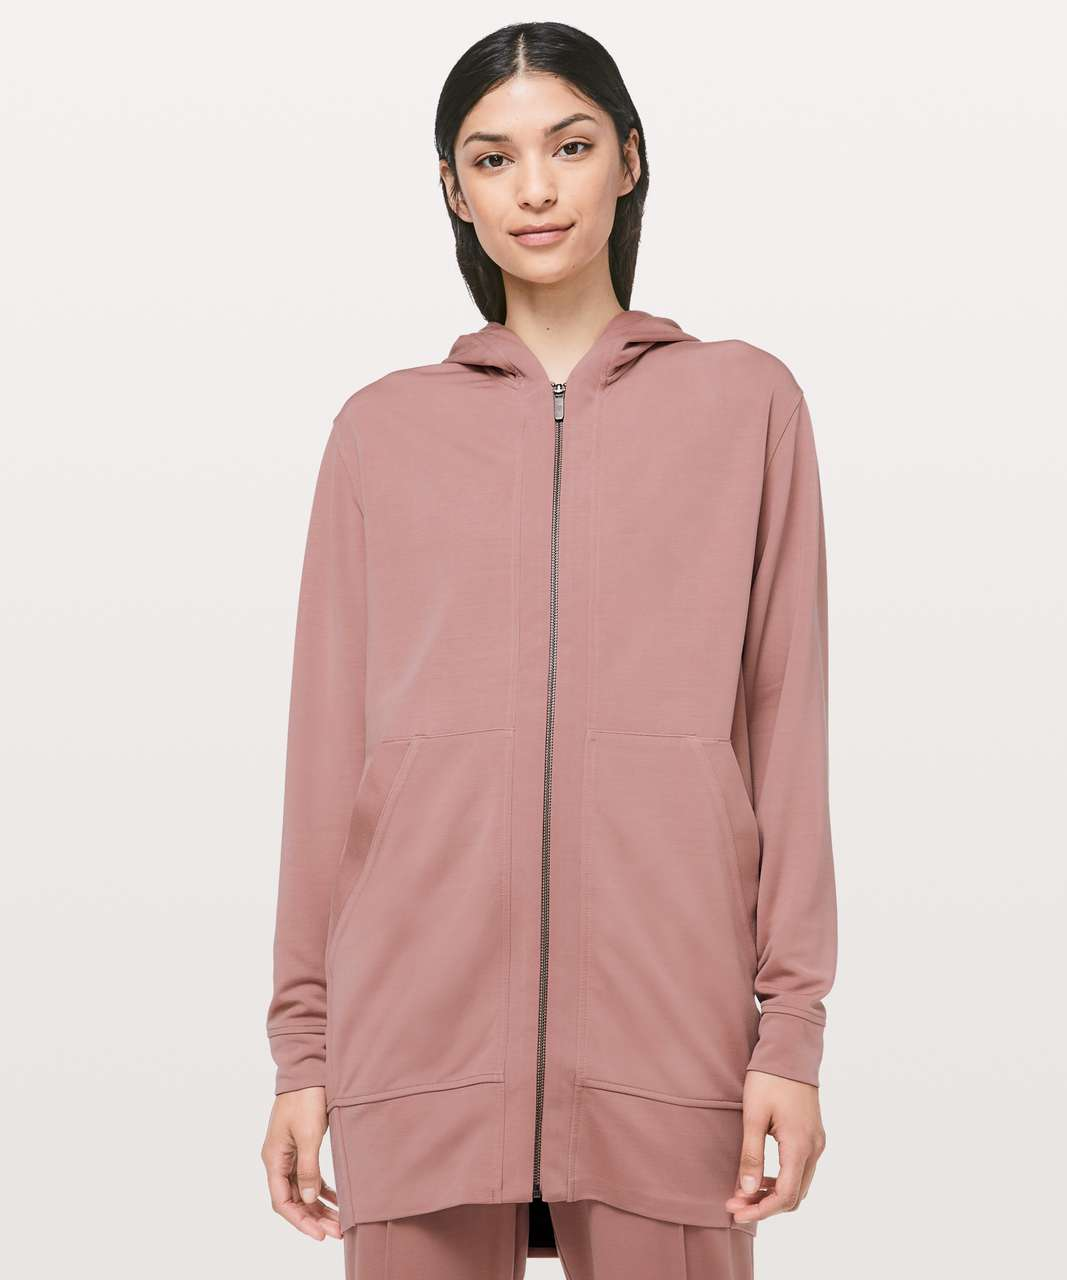 Lululemon Lisse Hoodie *lululemon Lab - Copper Coil